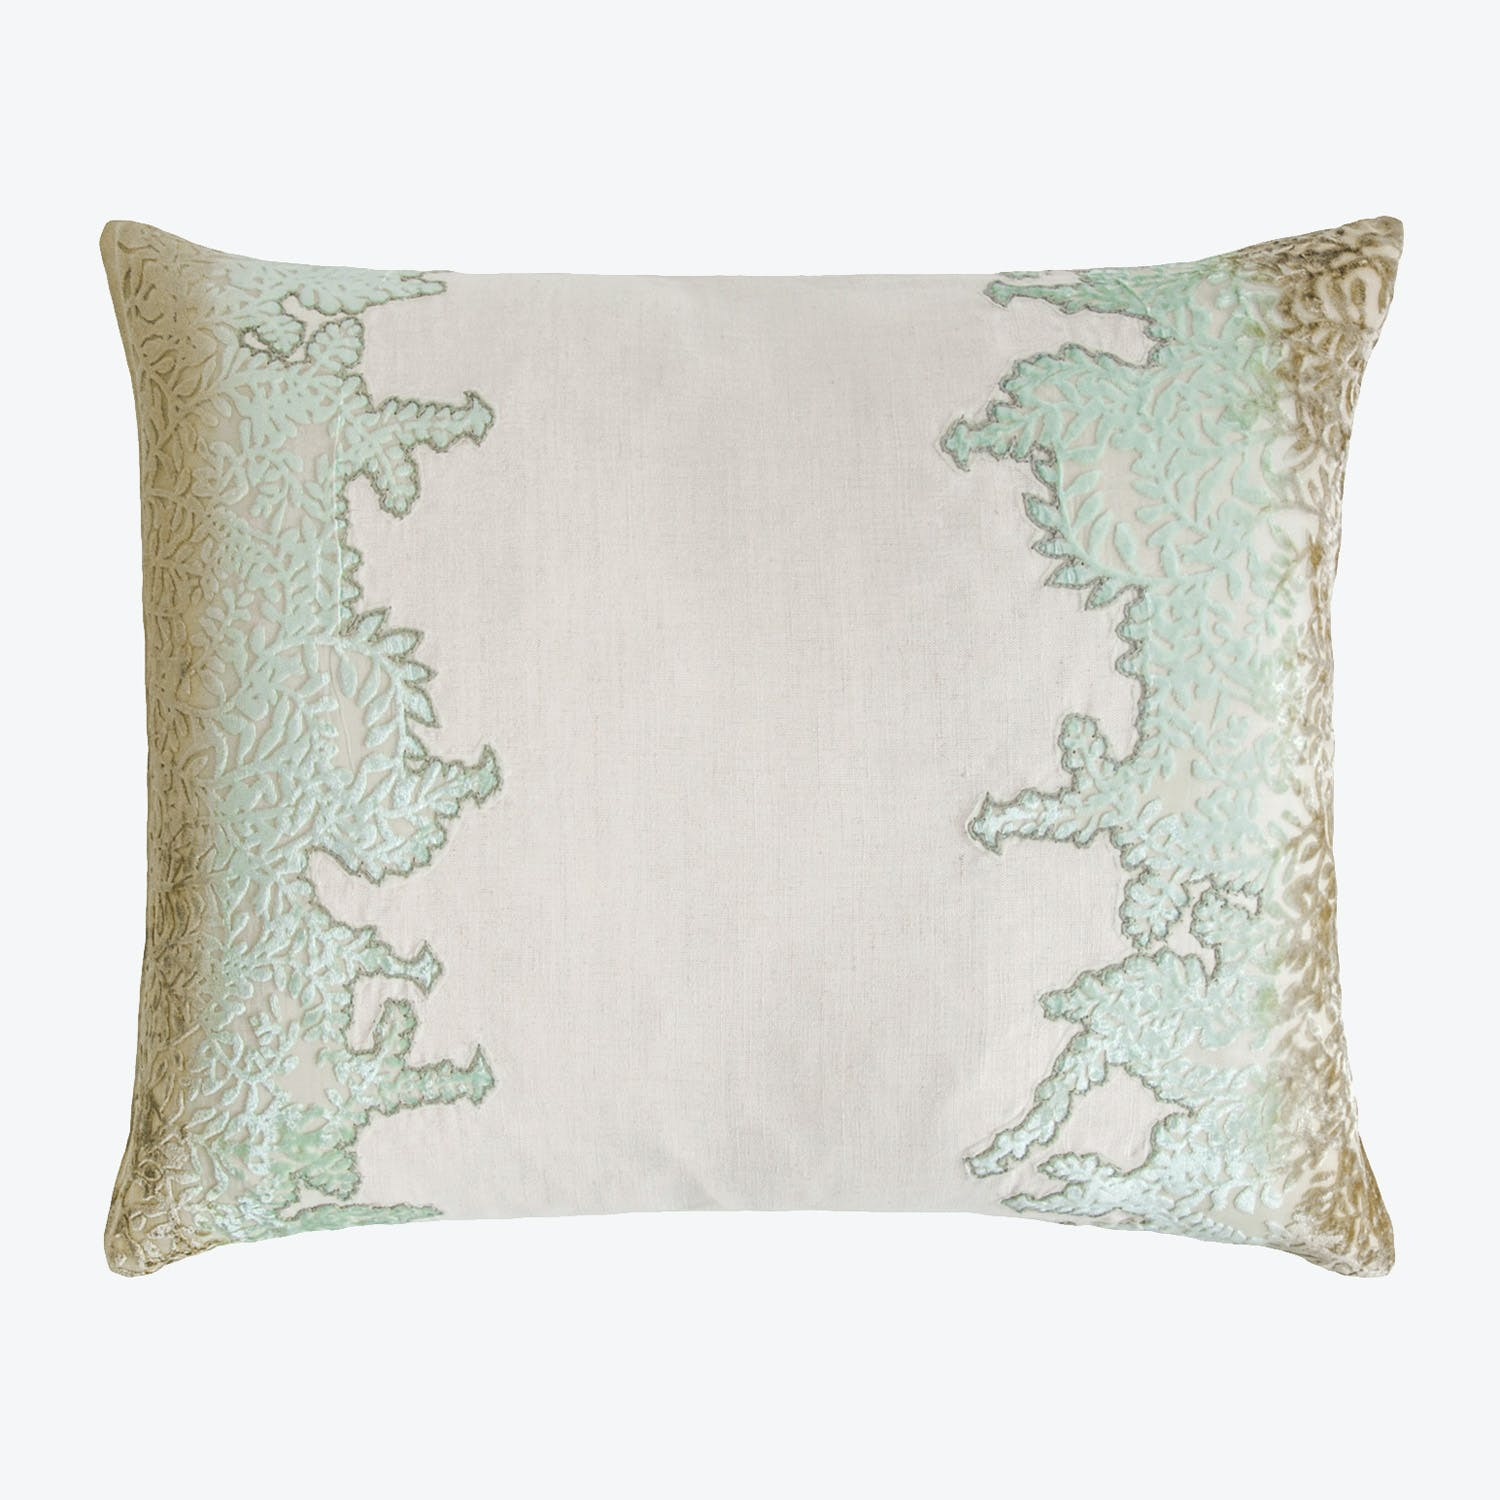 Product Image - Ferns Appliqued Linen Pillow Seaweed